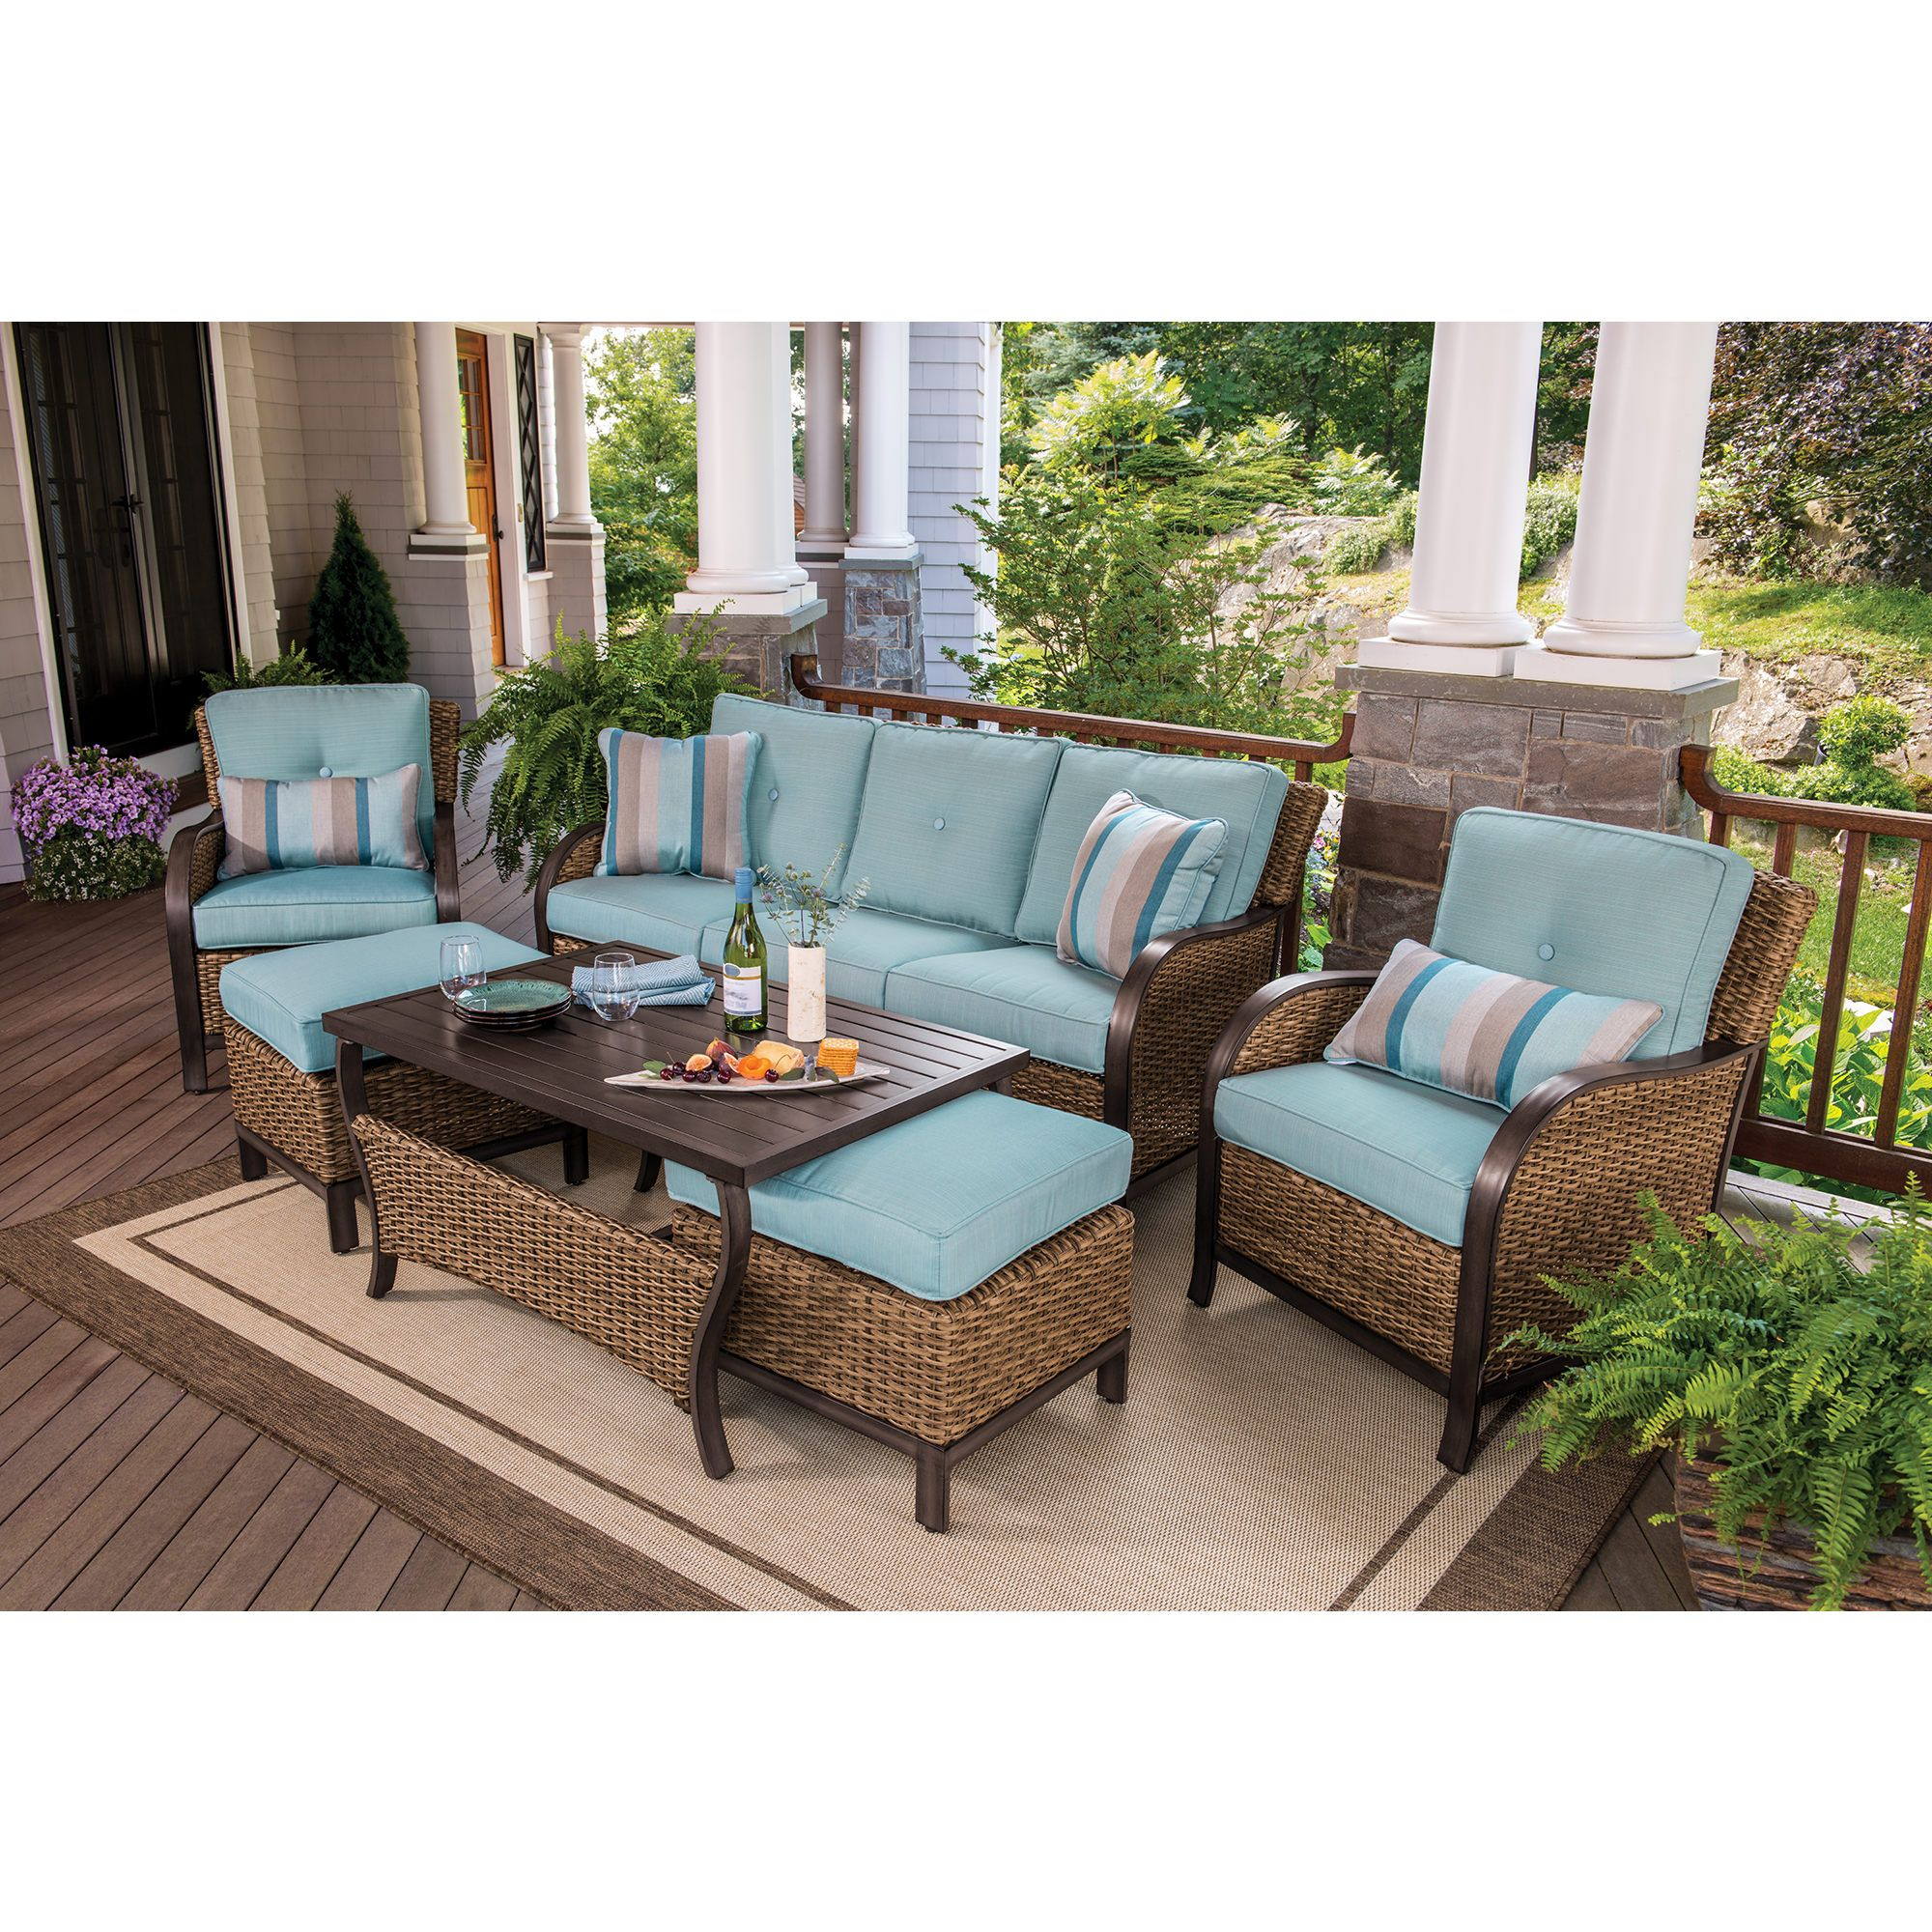 Berkley jensen nantucket 6 piece wicker patio set bjs for Outdoor wicker patio furniture